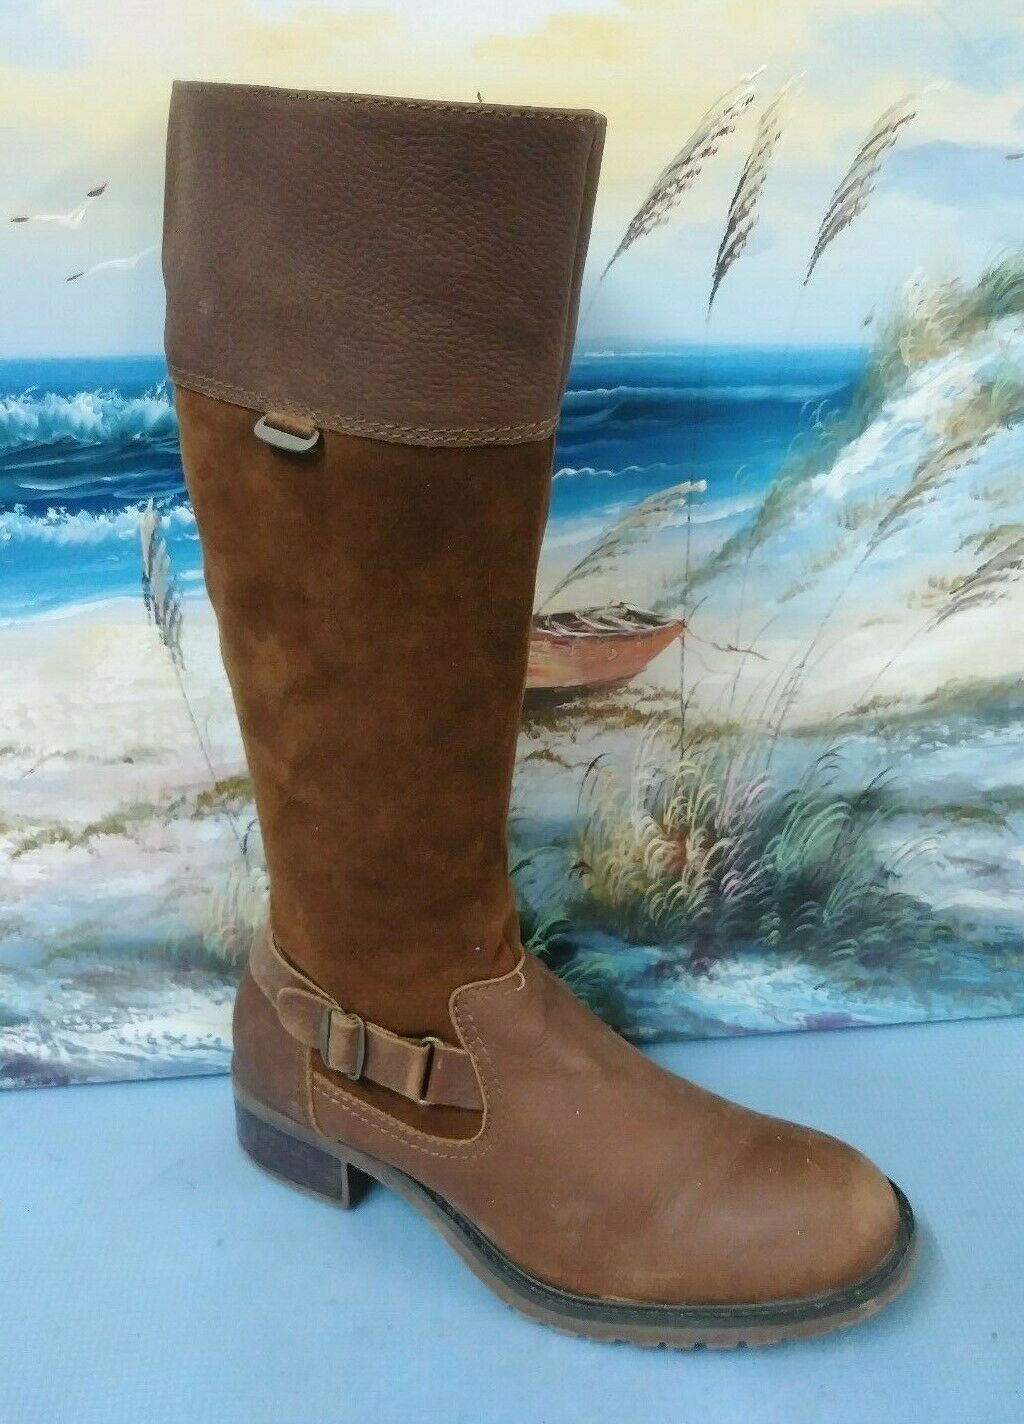 SONOMA 73277 WOMENS SUEDE LEATHER FASHION BOOTS SIZE 8.5 M CARLOTA BROWN